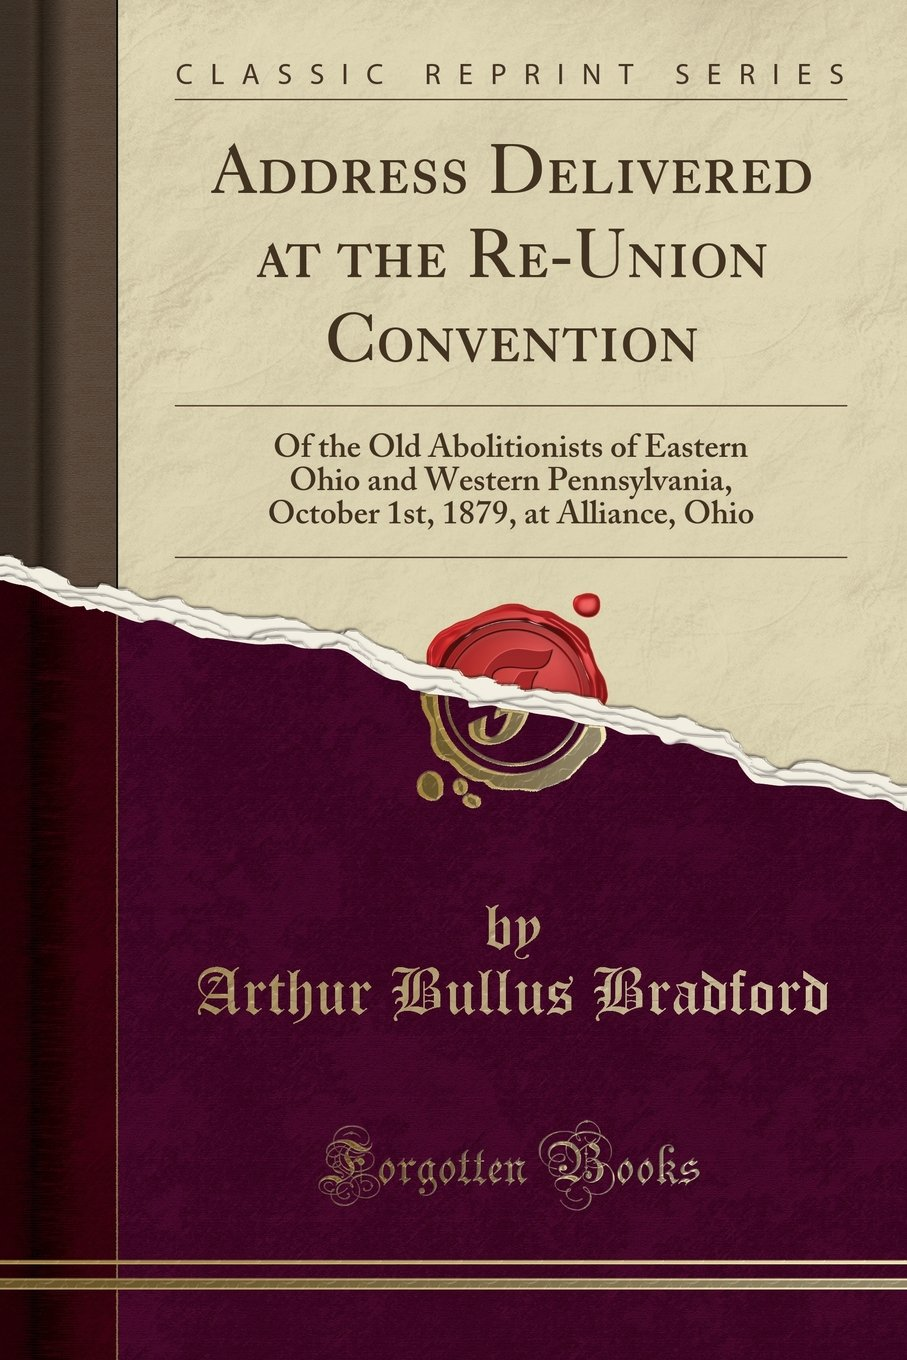 Download Address Delivered at the Re-Union Convention: Of the Old Abolitionists of Eastern Ohio and Western Pennsylvania, October 1st, 1879, at Alliance, Ohio (Classic Reprint) ebook